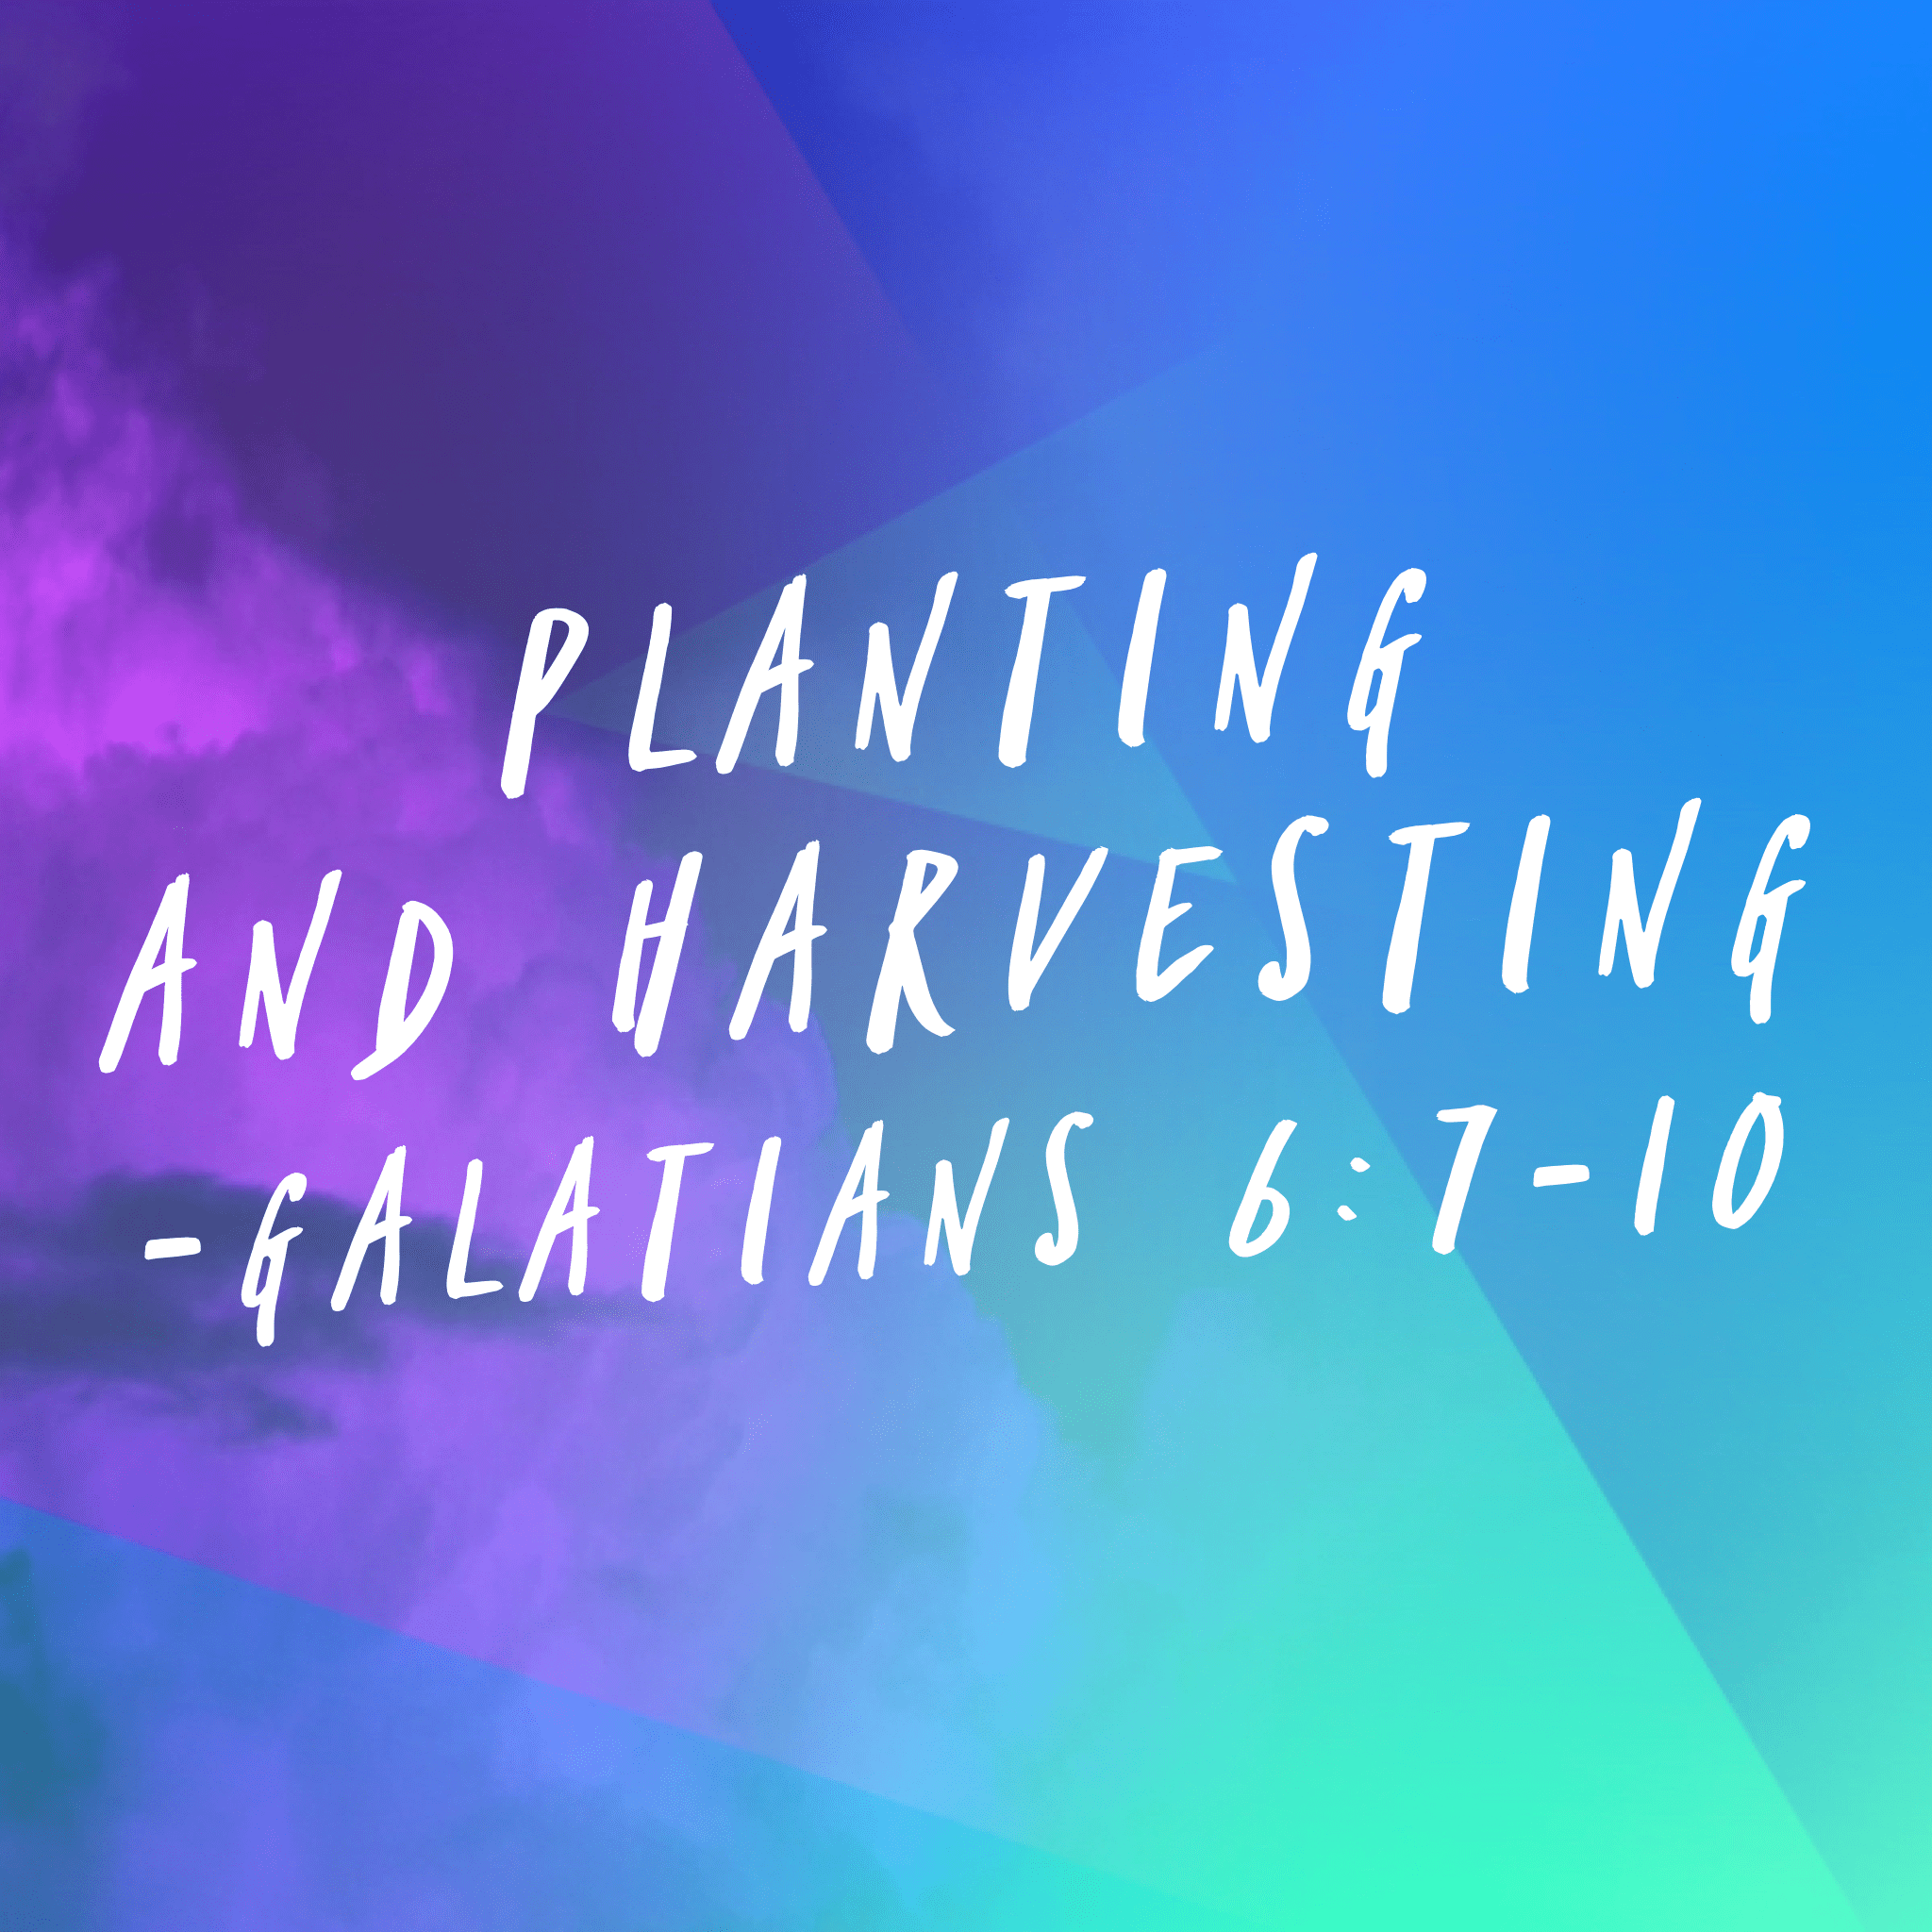 Planting And Harvesting